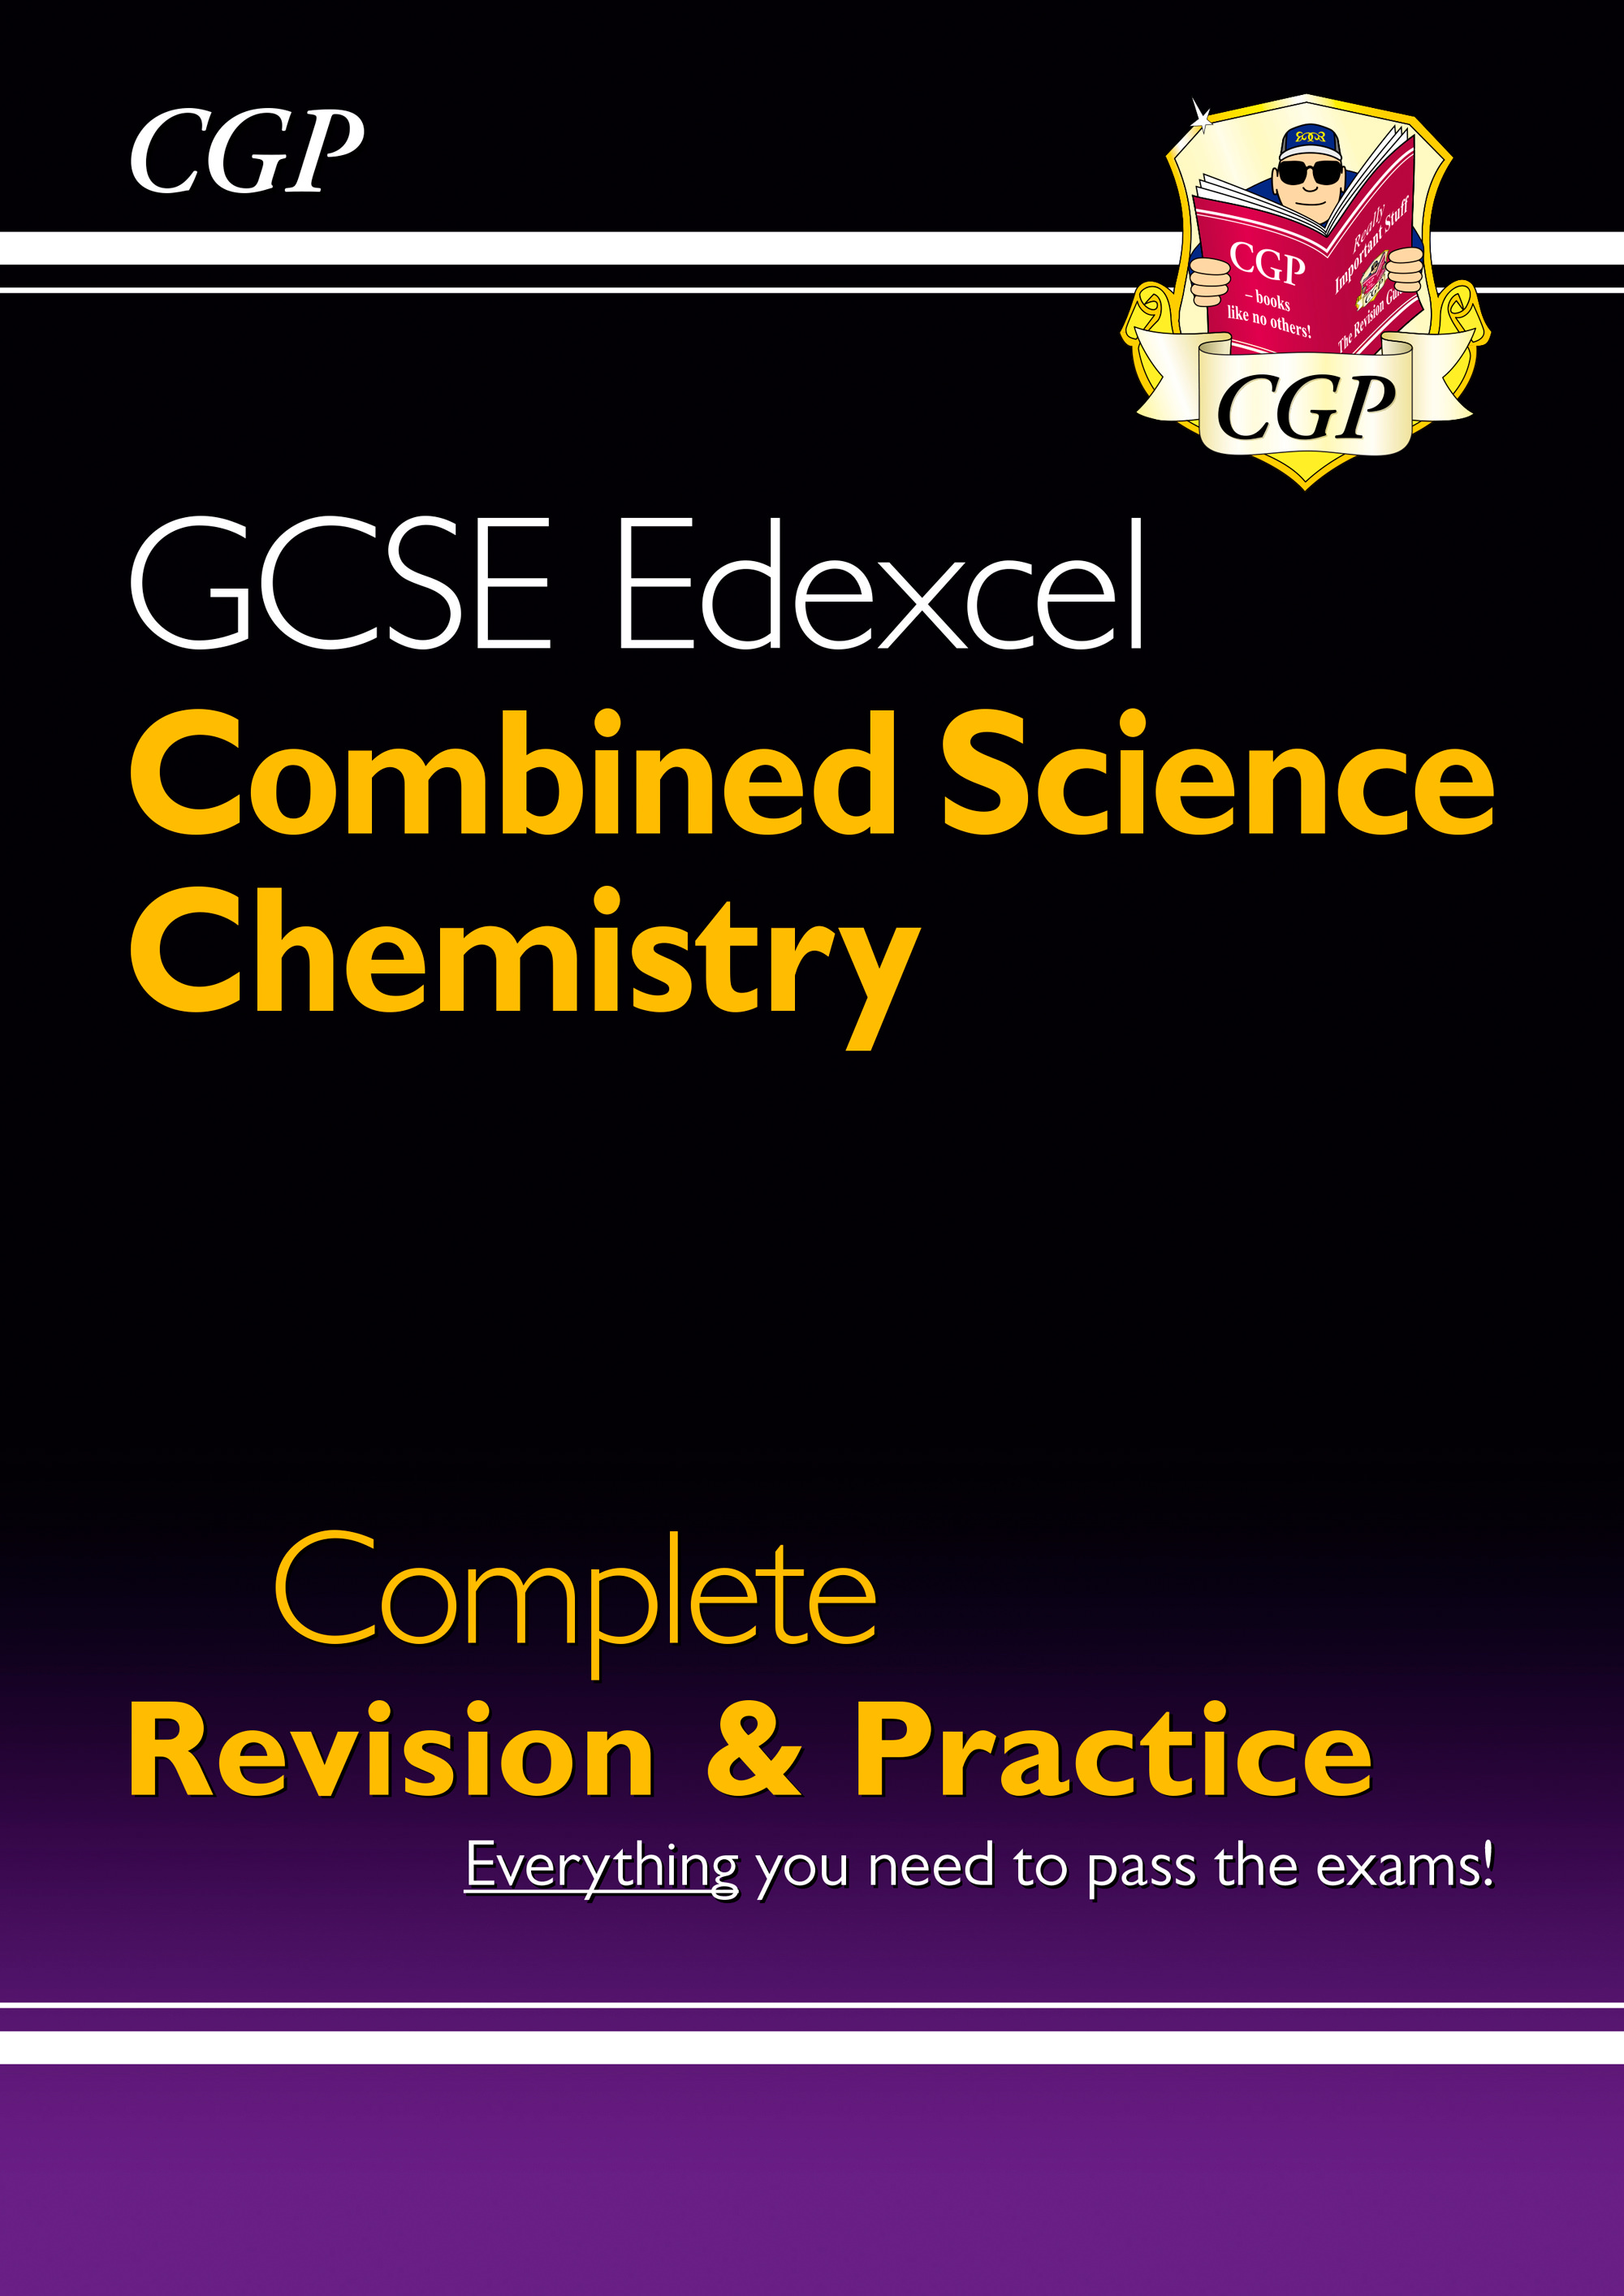 SCCES41DK - New Grade 9-1 GCSE Combined Science: Chemistry Edexcel Complete Revision & Practice